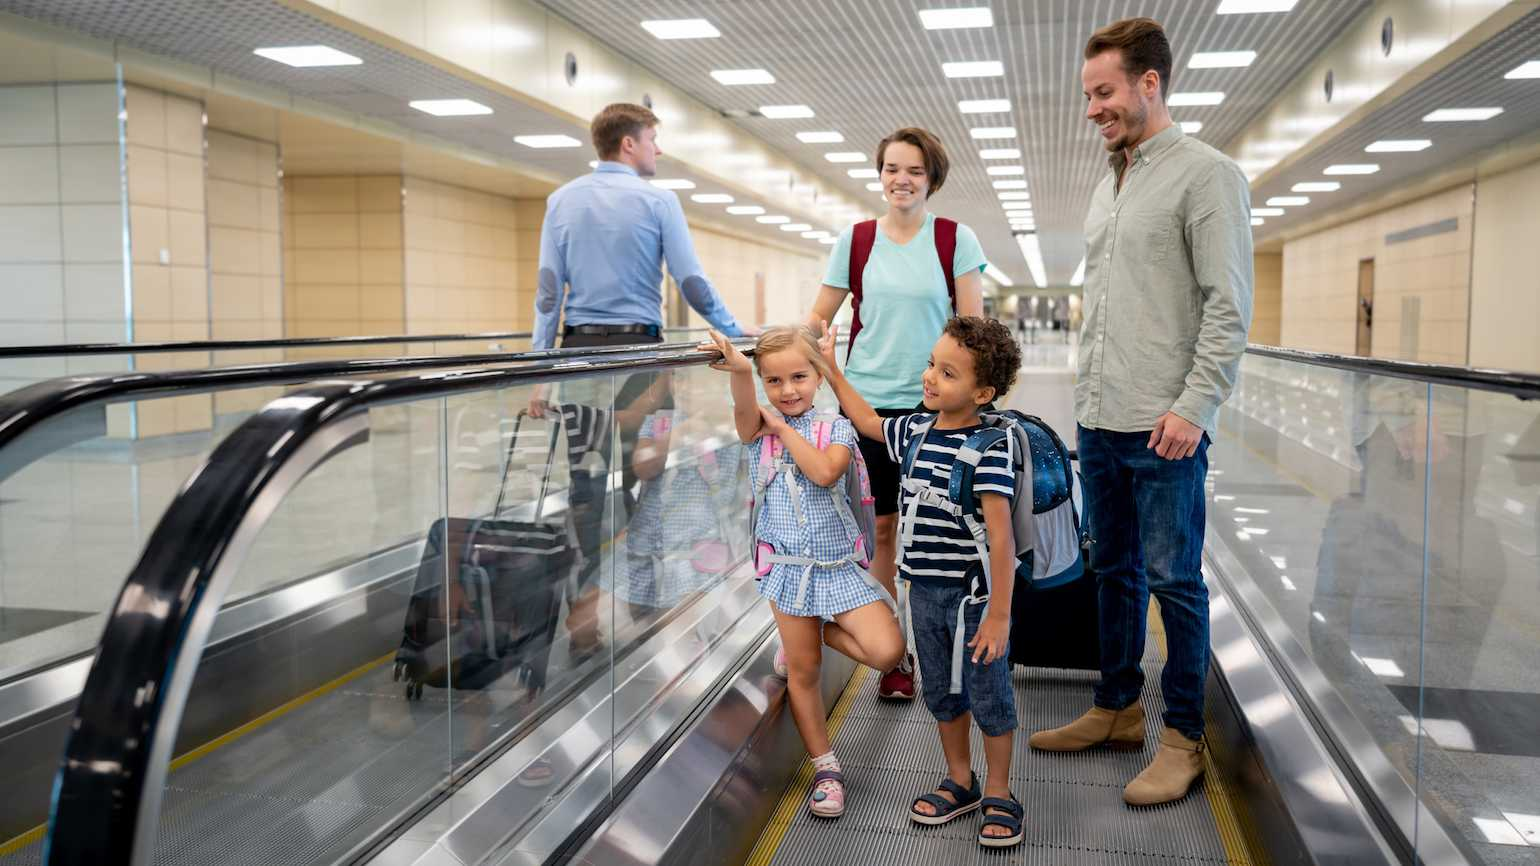 Family travel over the holidays